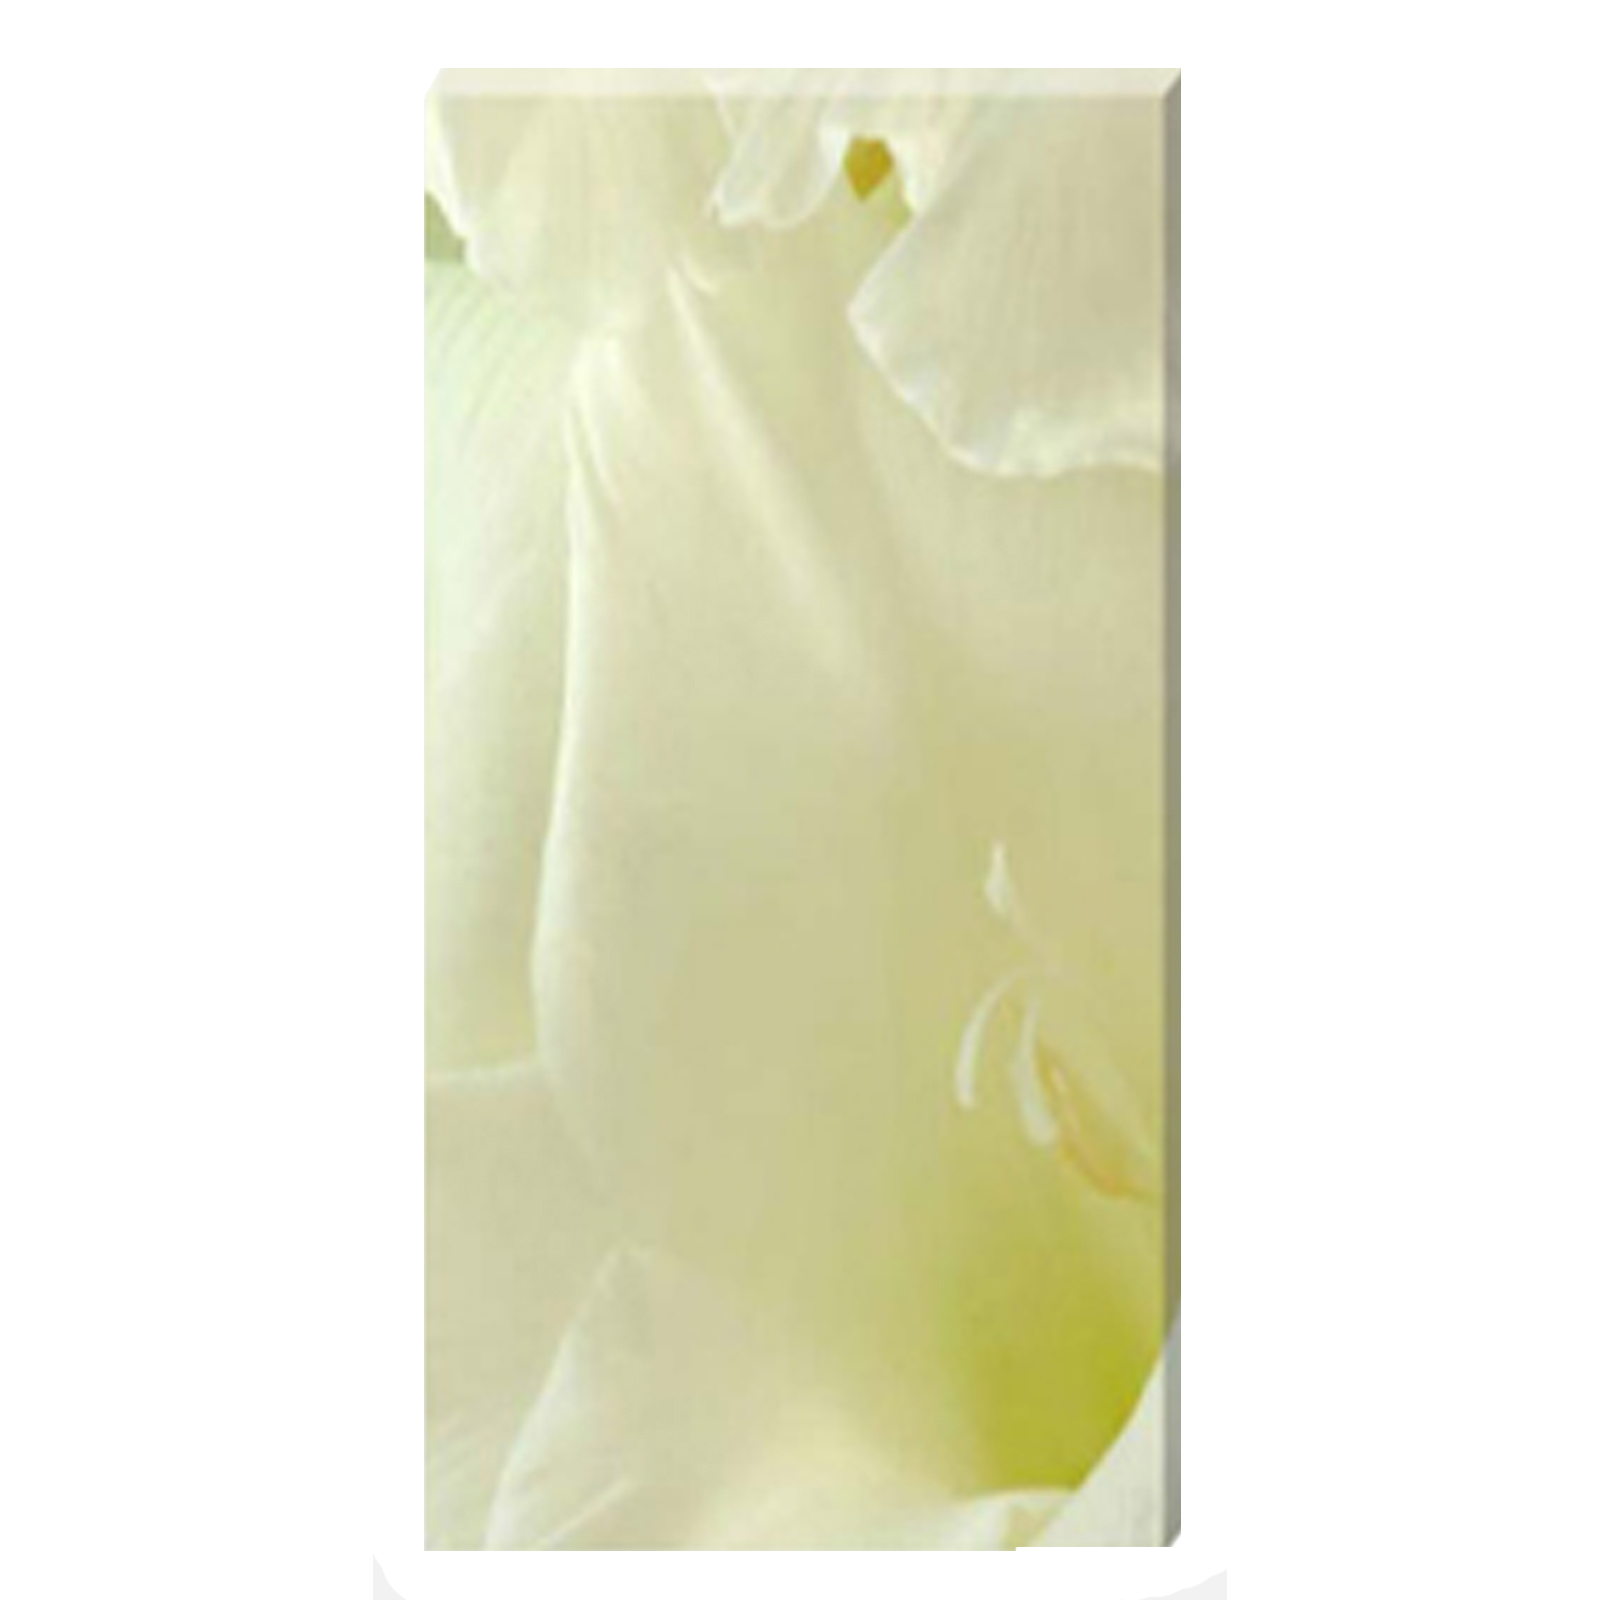 Gladioli White Linen Stretched Canvas by Celia Henderson LRPS